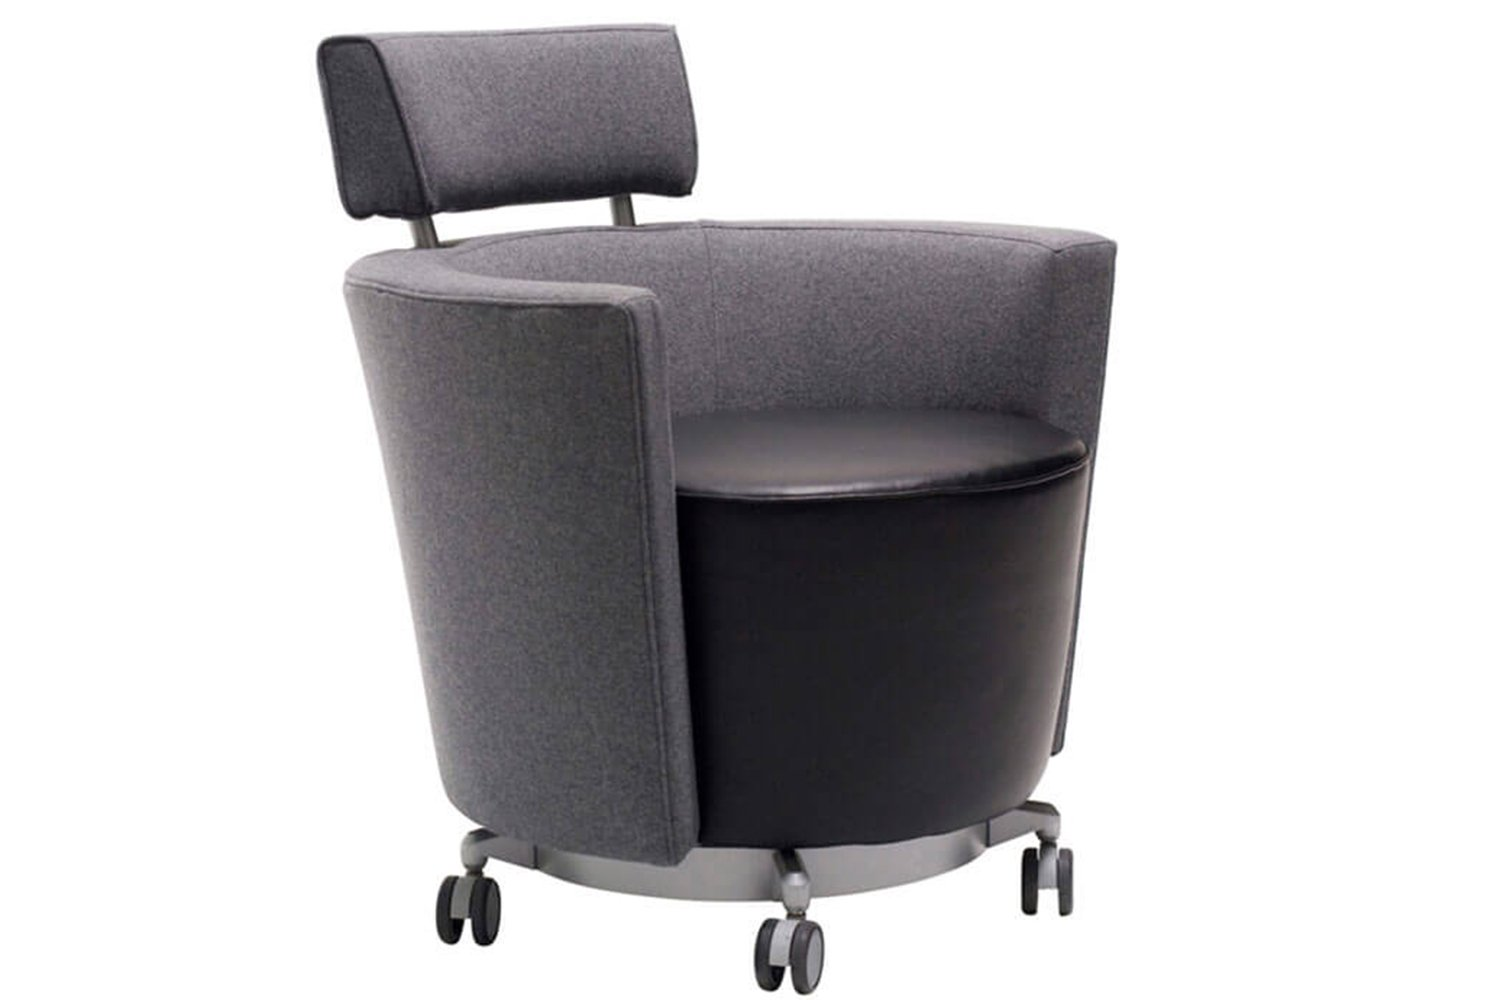 It comes in a variety of styles, including a mobile lounge chair available in multiple sizes.